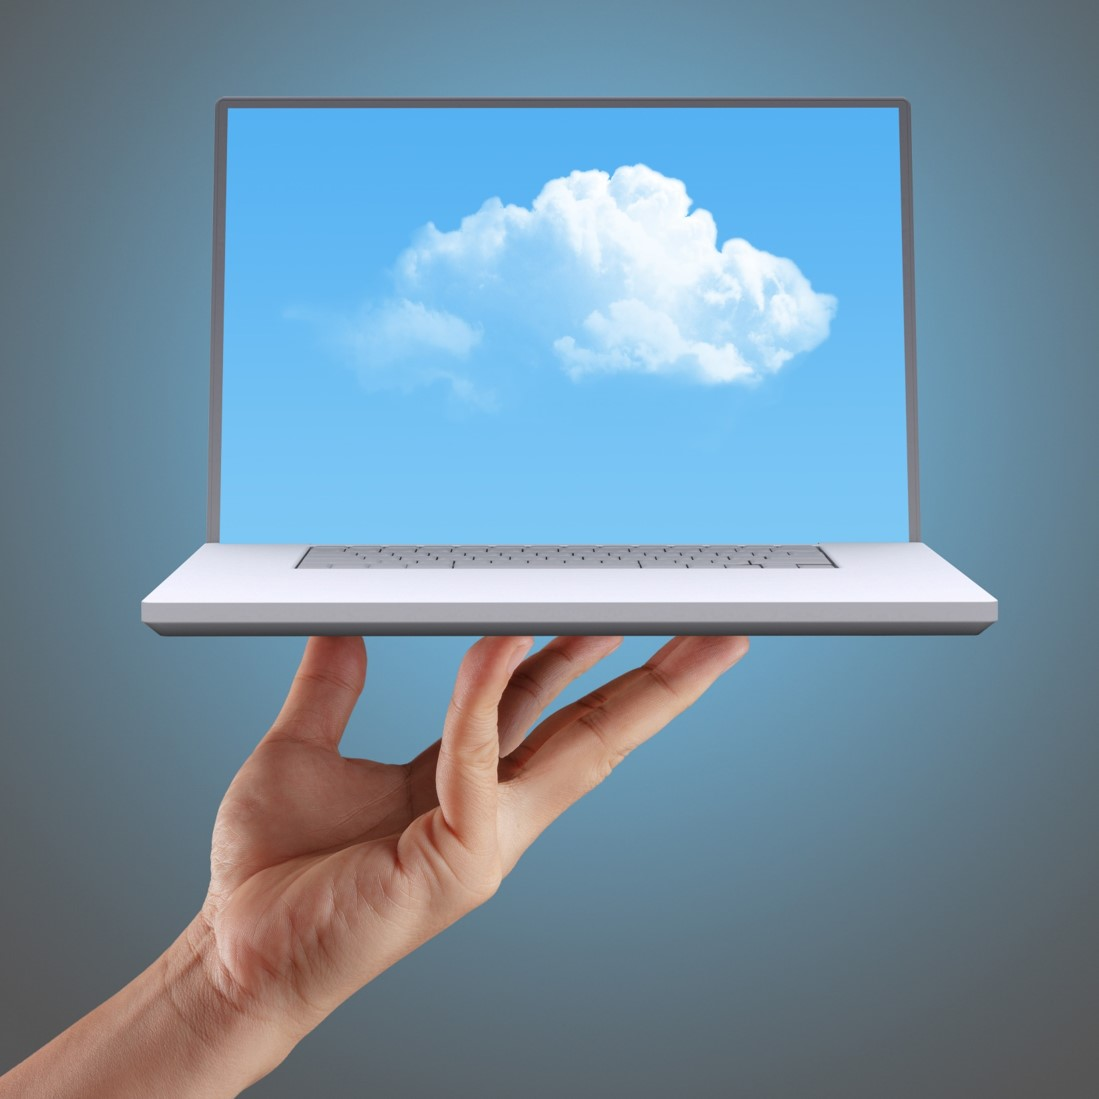 6 Things Stopping Organizations from Maximizing Their Public Cloud ROI